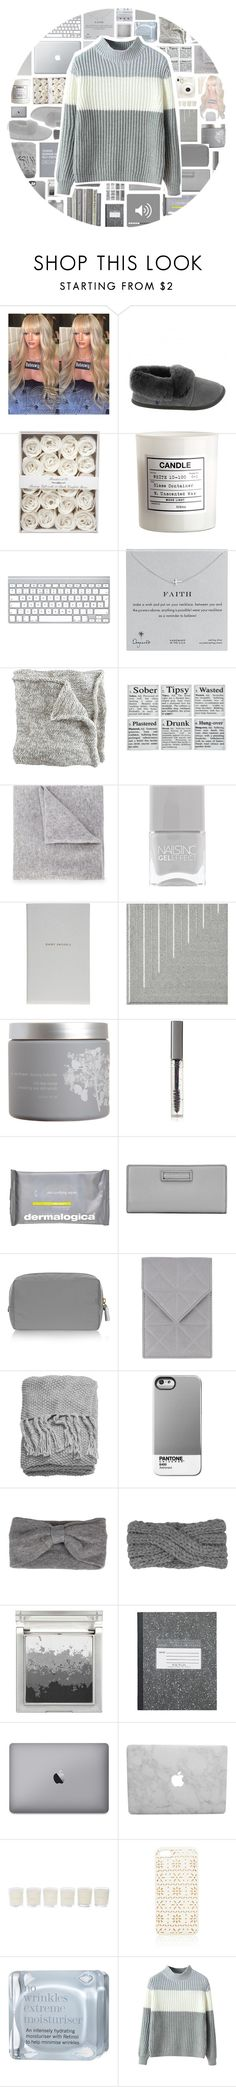 """""""Sweater weather"""" by stelbell ❤ liked on Polyvore featuring Lazybones, Fuji, H&M, Dogeared, Lucien Pellat-Finet, Nails Inc., Smythson, NARS Cosmetics, red flower and BBrowBar"""